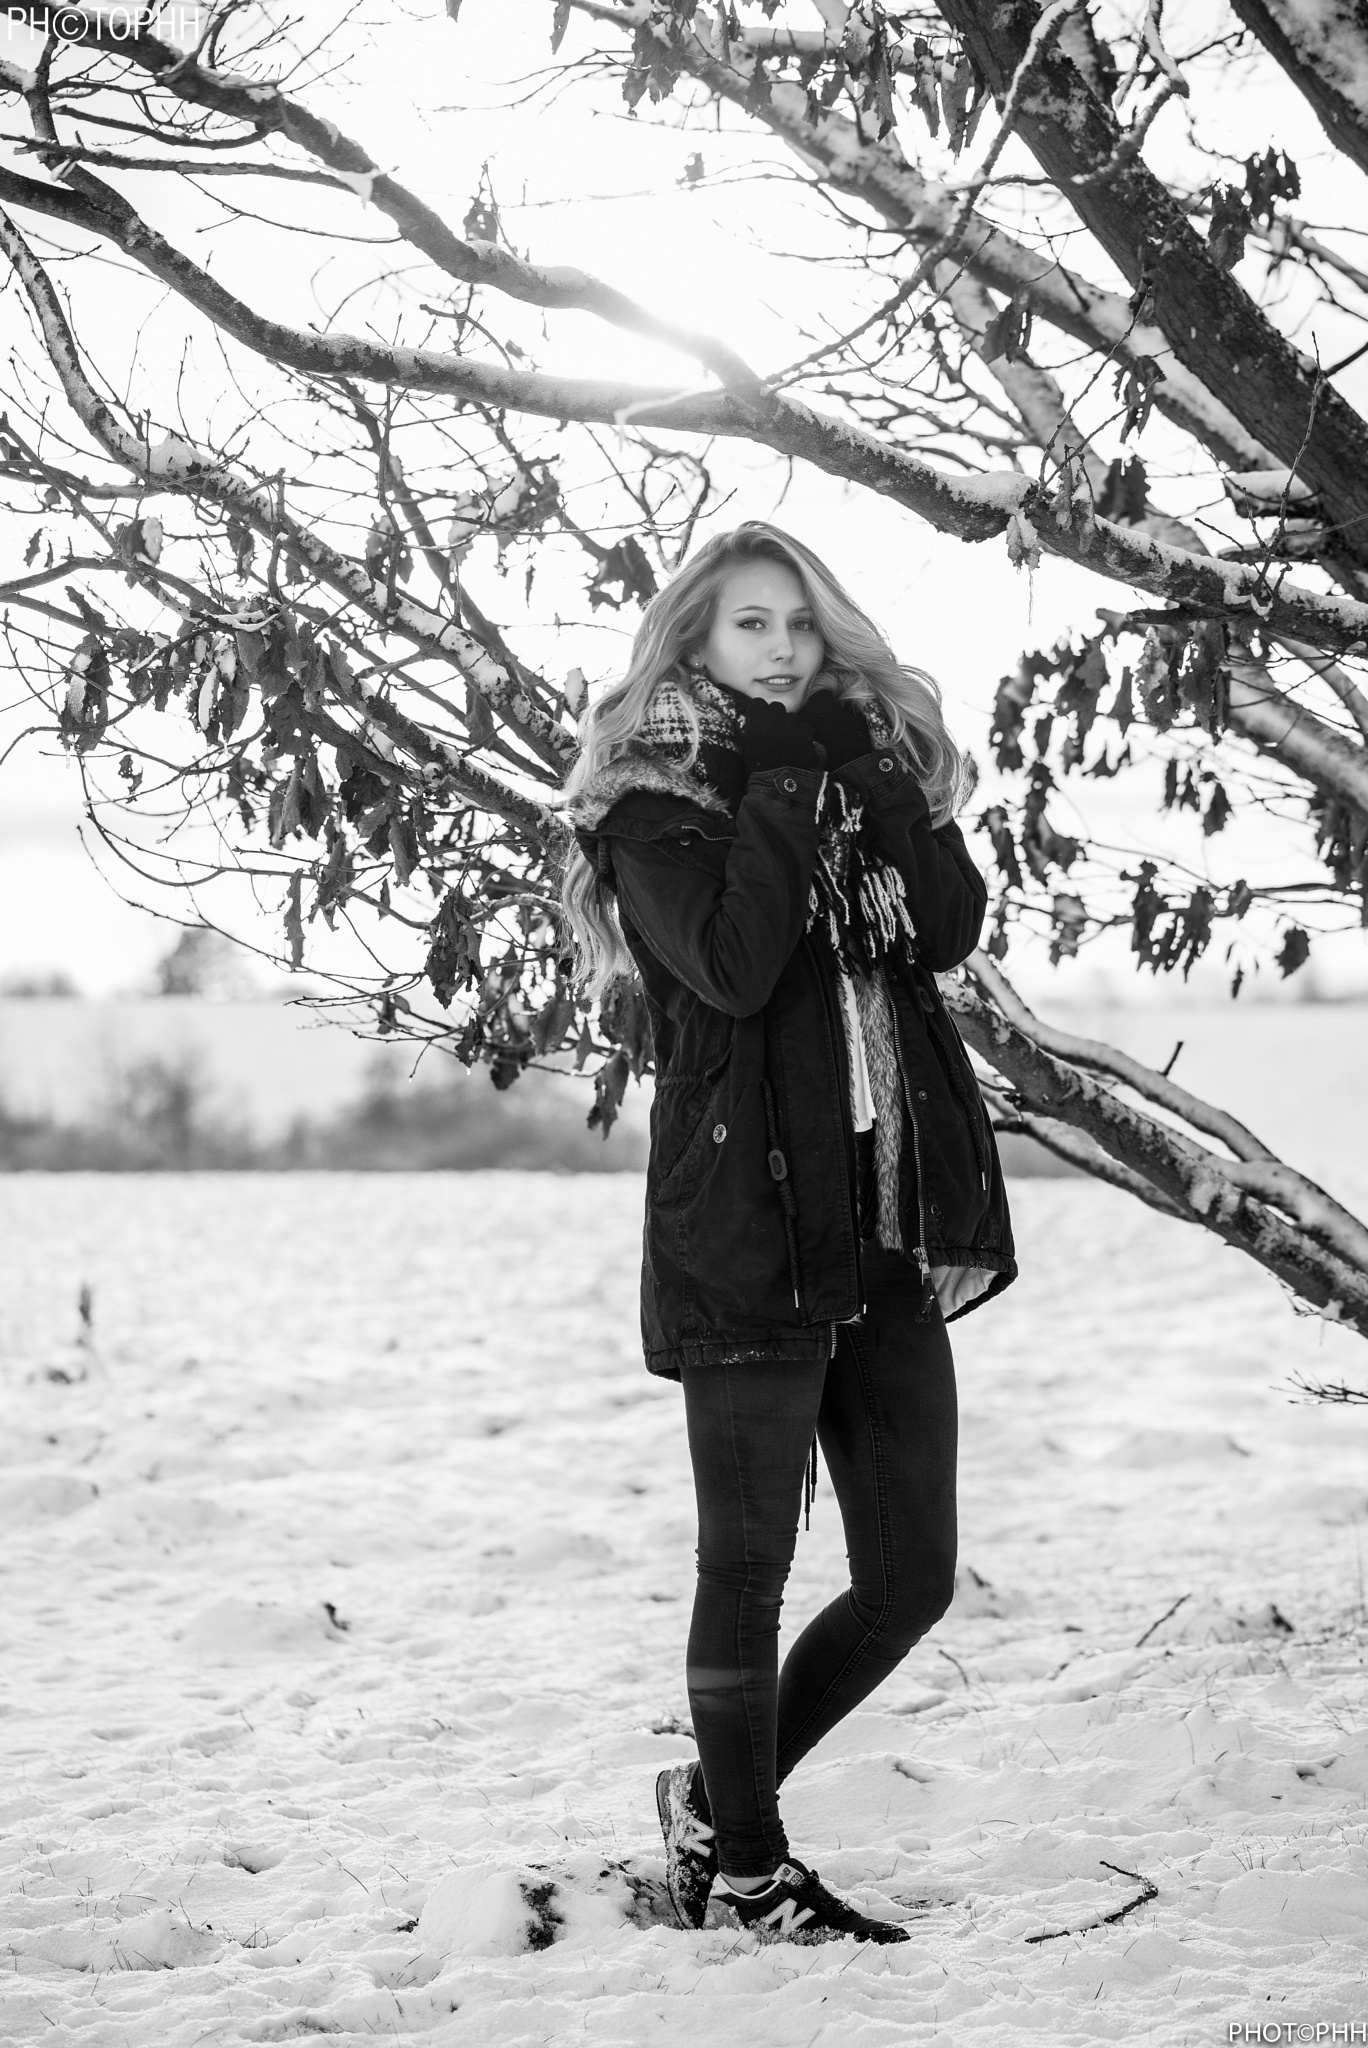 Emilie in the snow  by PHOTOPHH.1